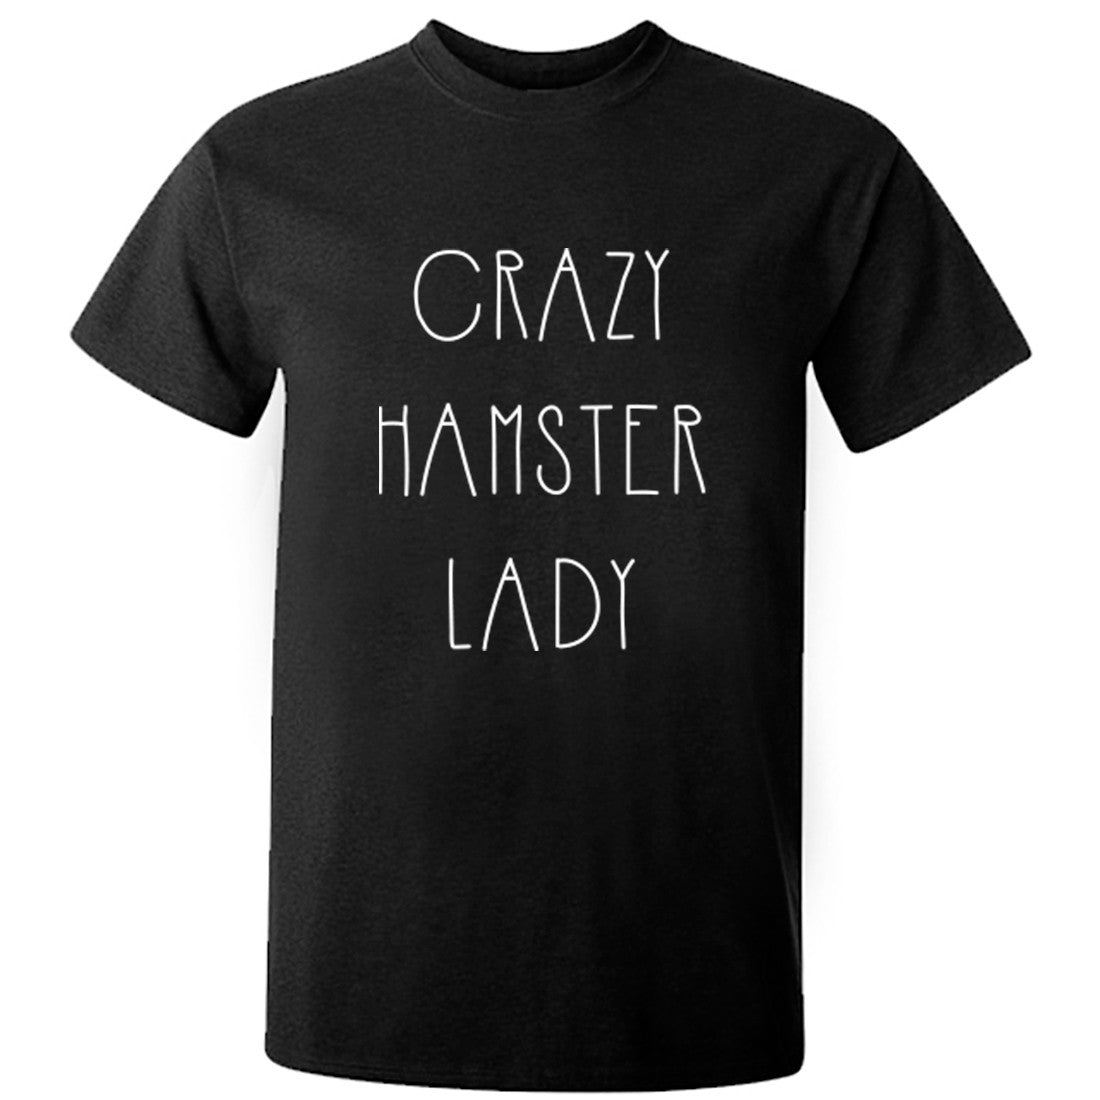 Crazy Hamster Lady Unisex Fit T-Shirt K0594 - Illustrated Identity Ltd.